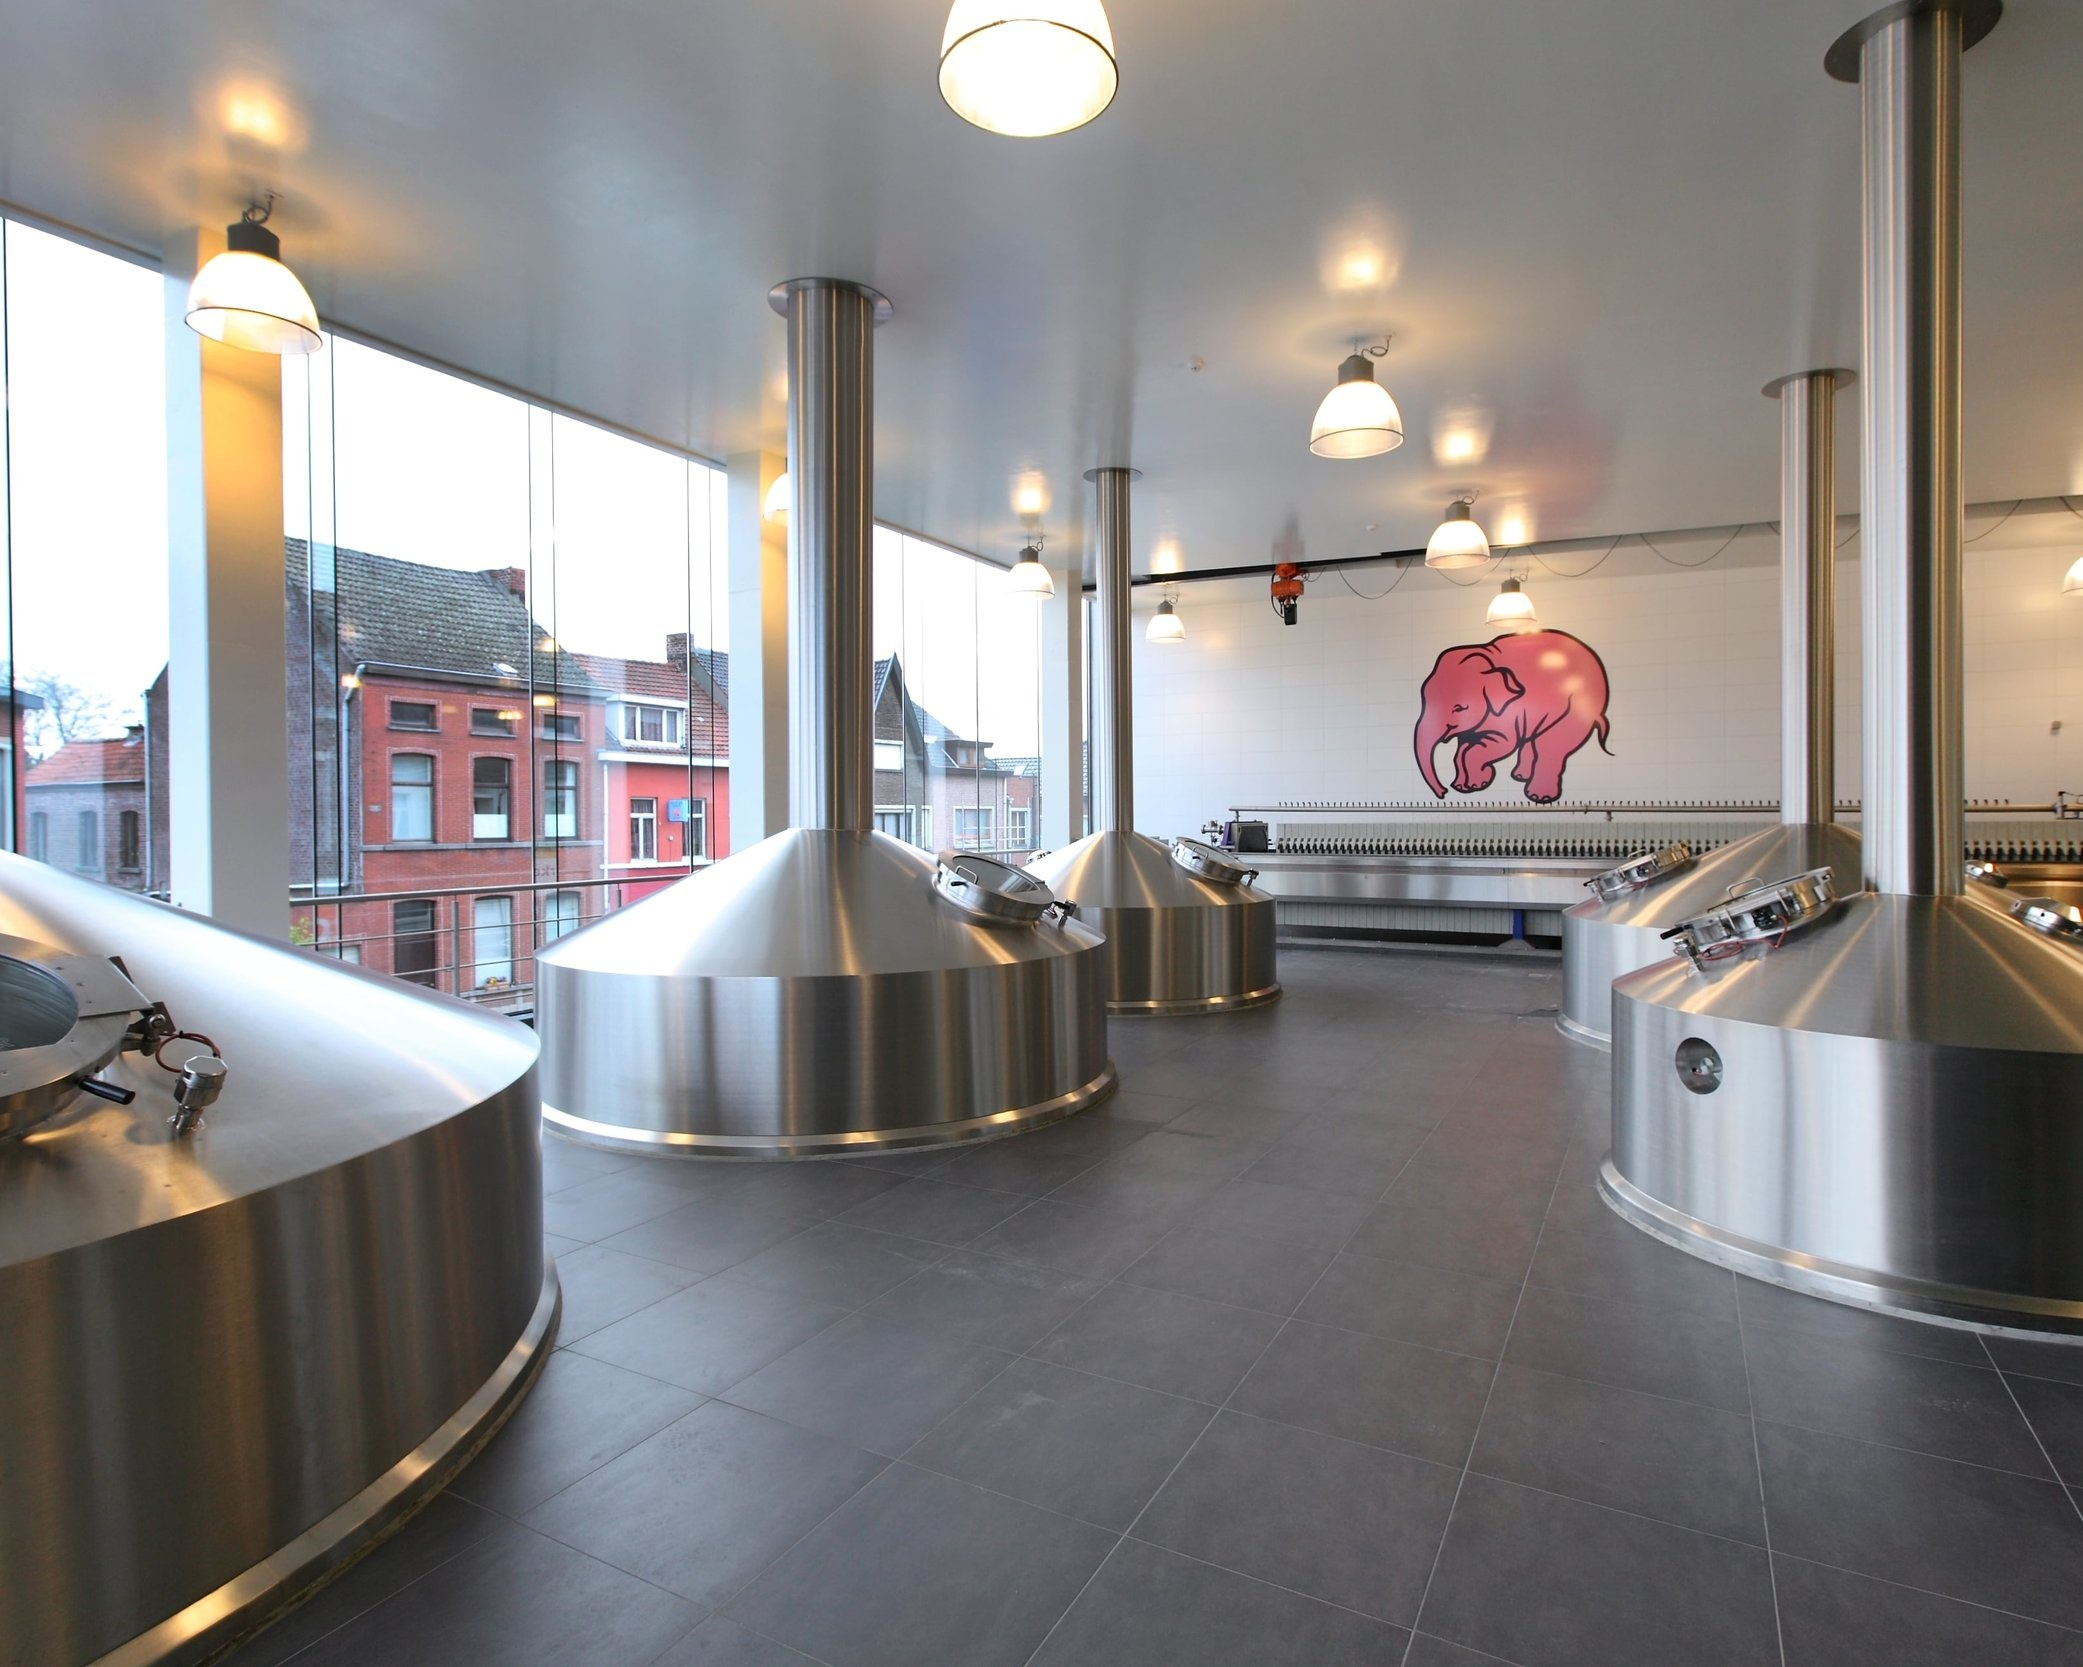 Interior at Huyghe brewery with state-of-the-art stainless steel brewing tanks